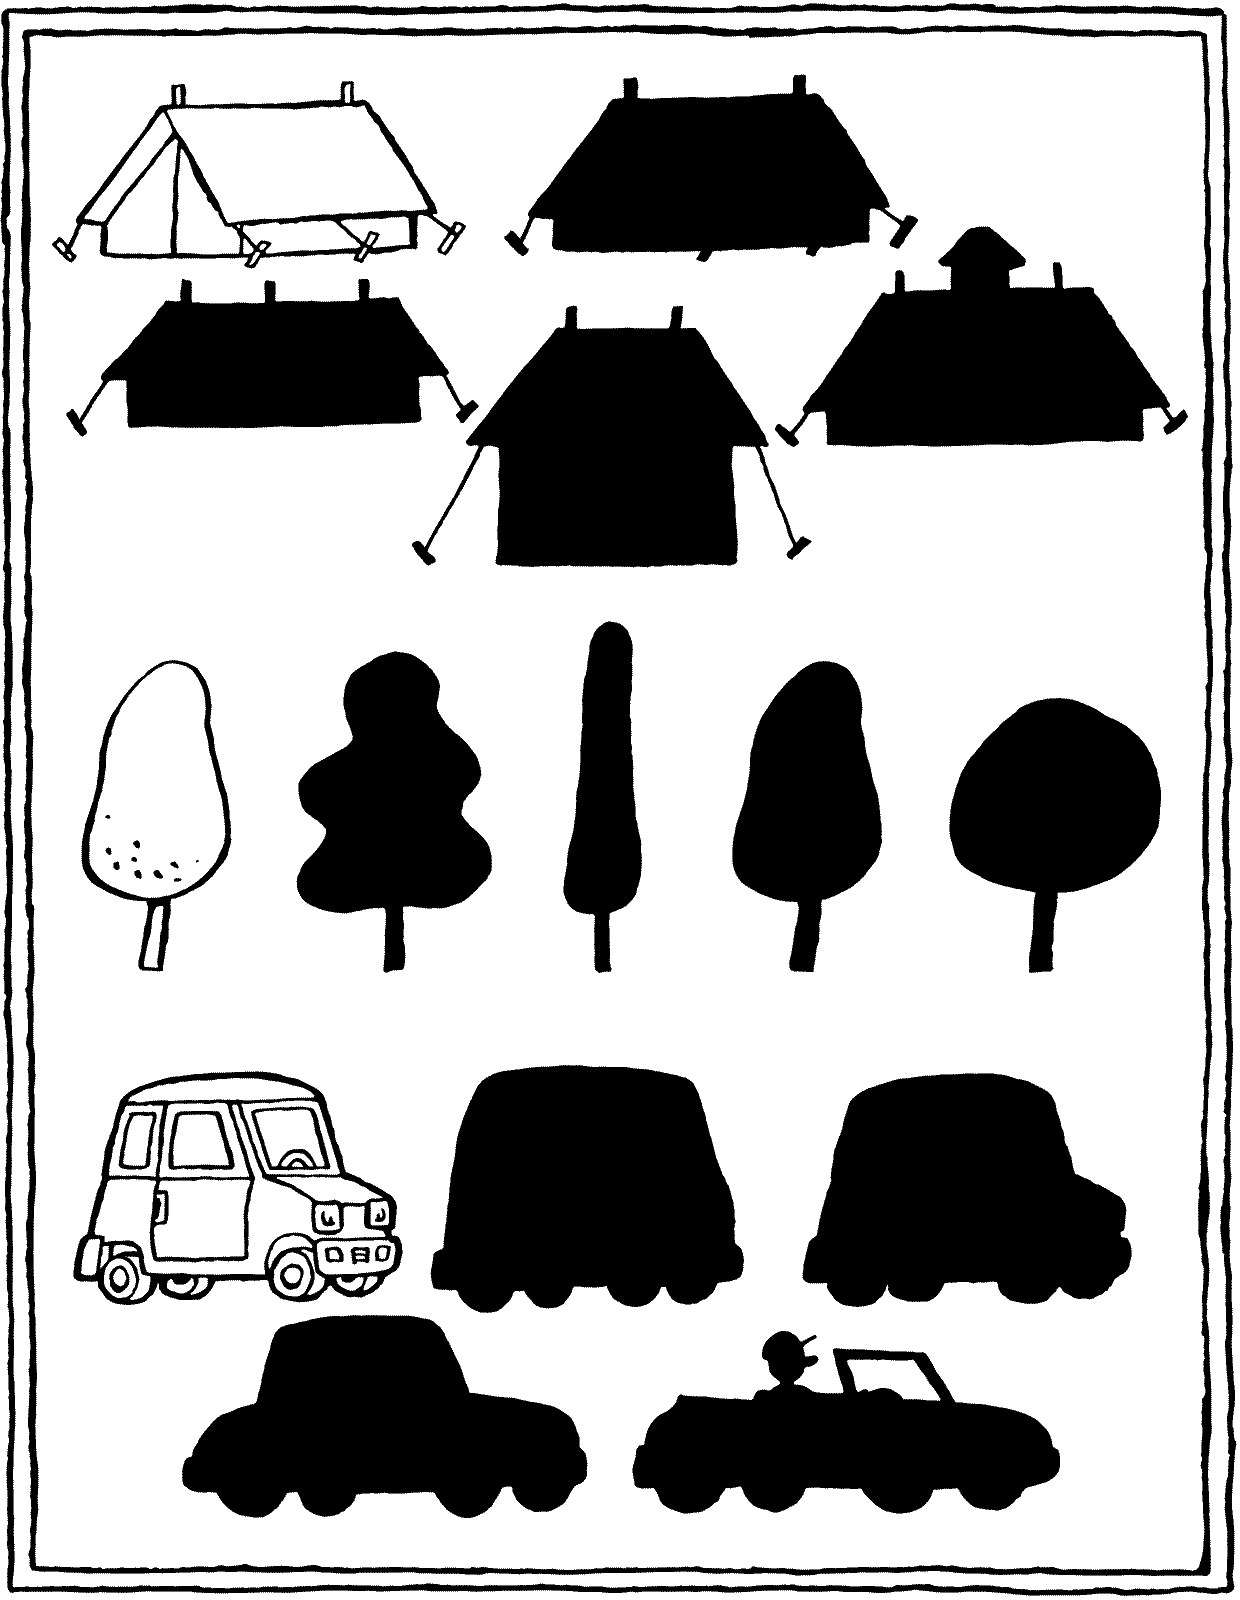 find the matching shadow colouring page drawing picture 01V